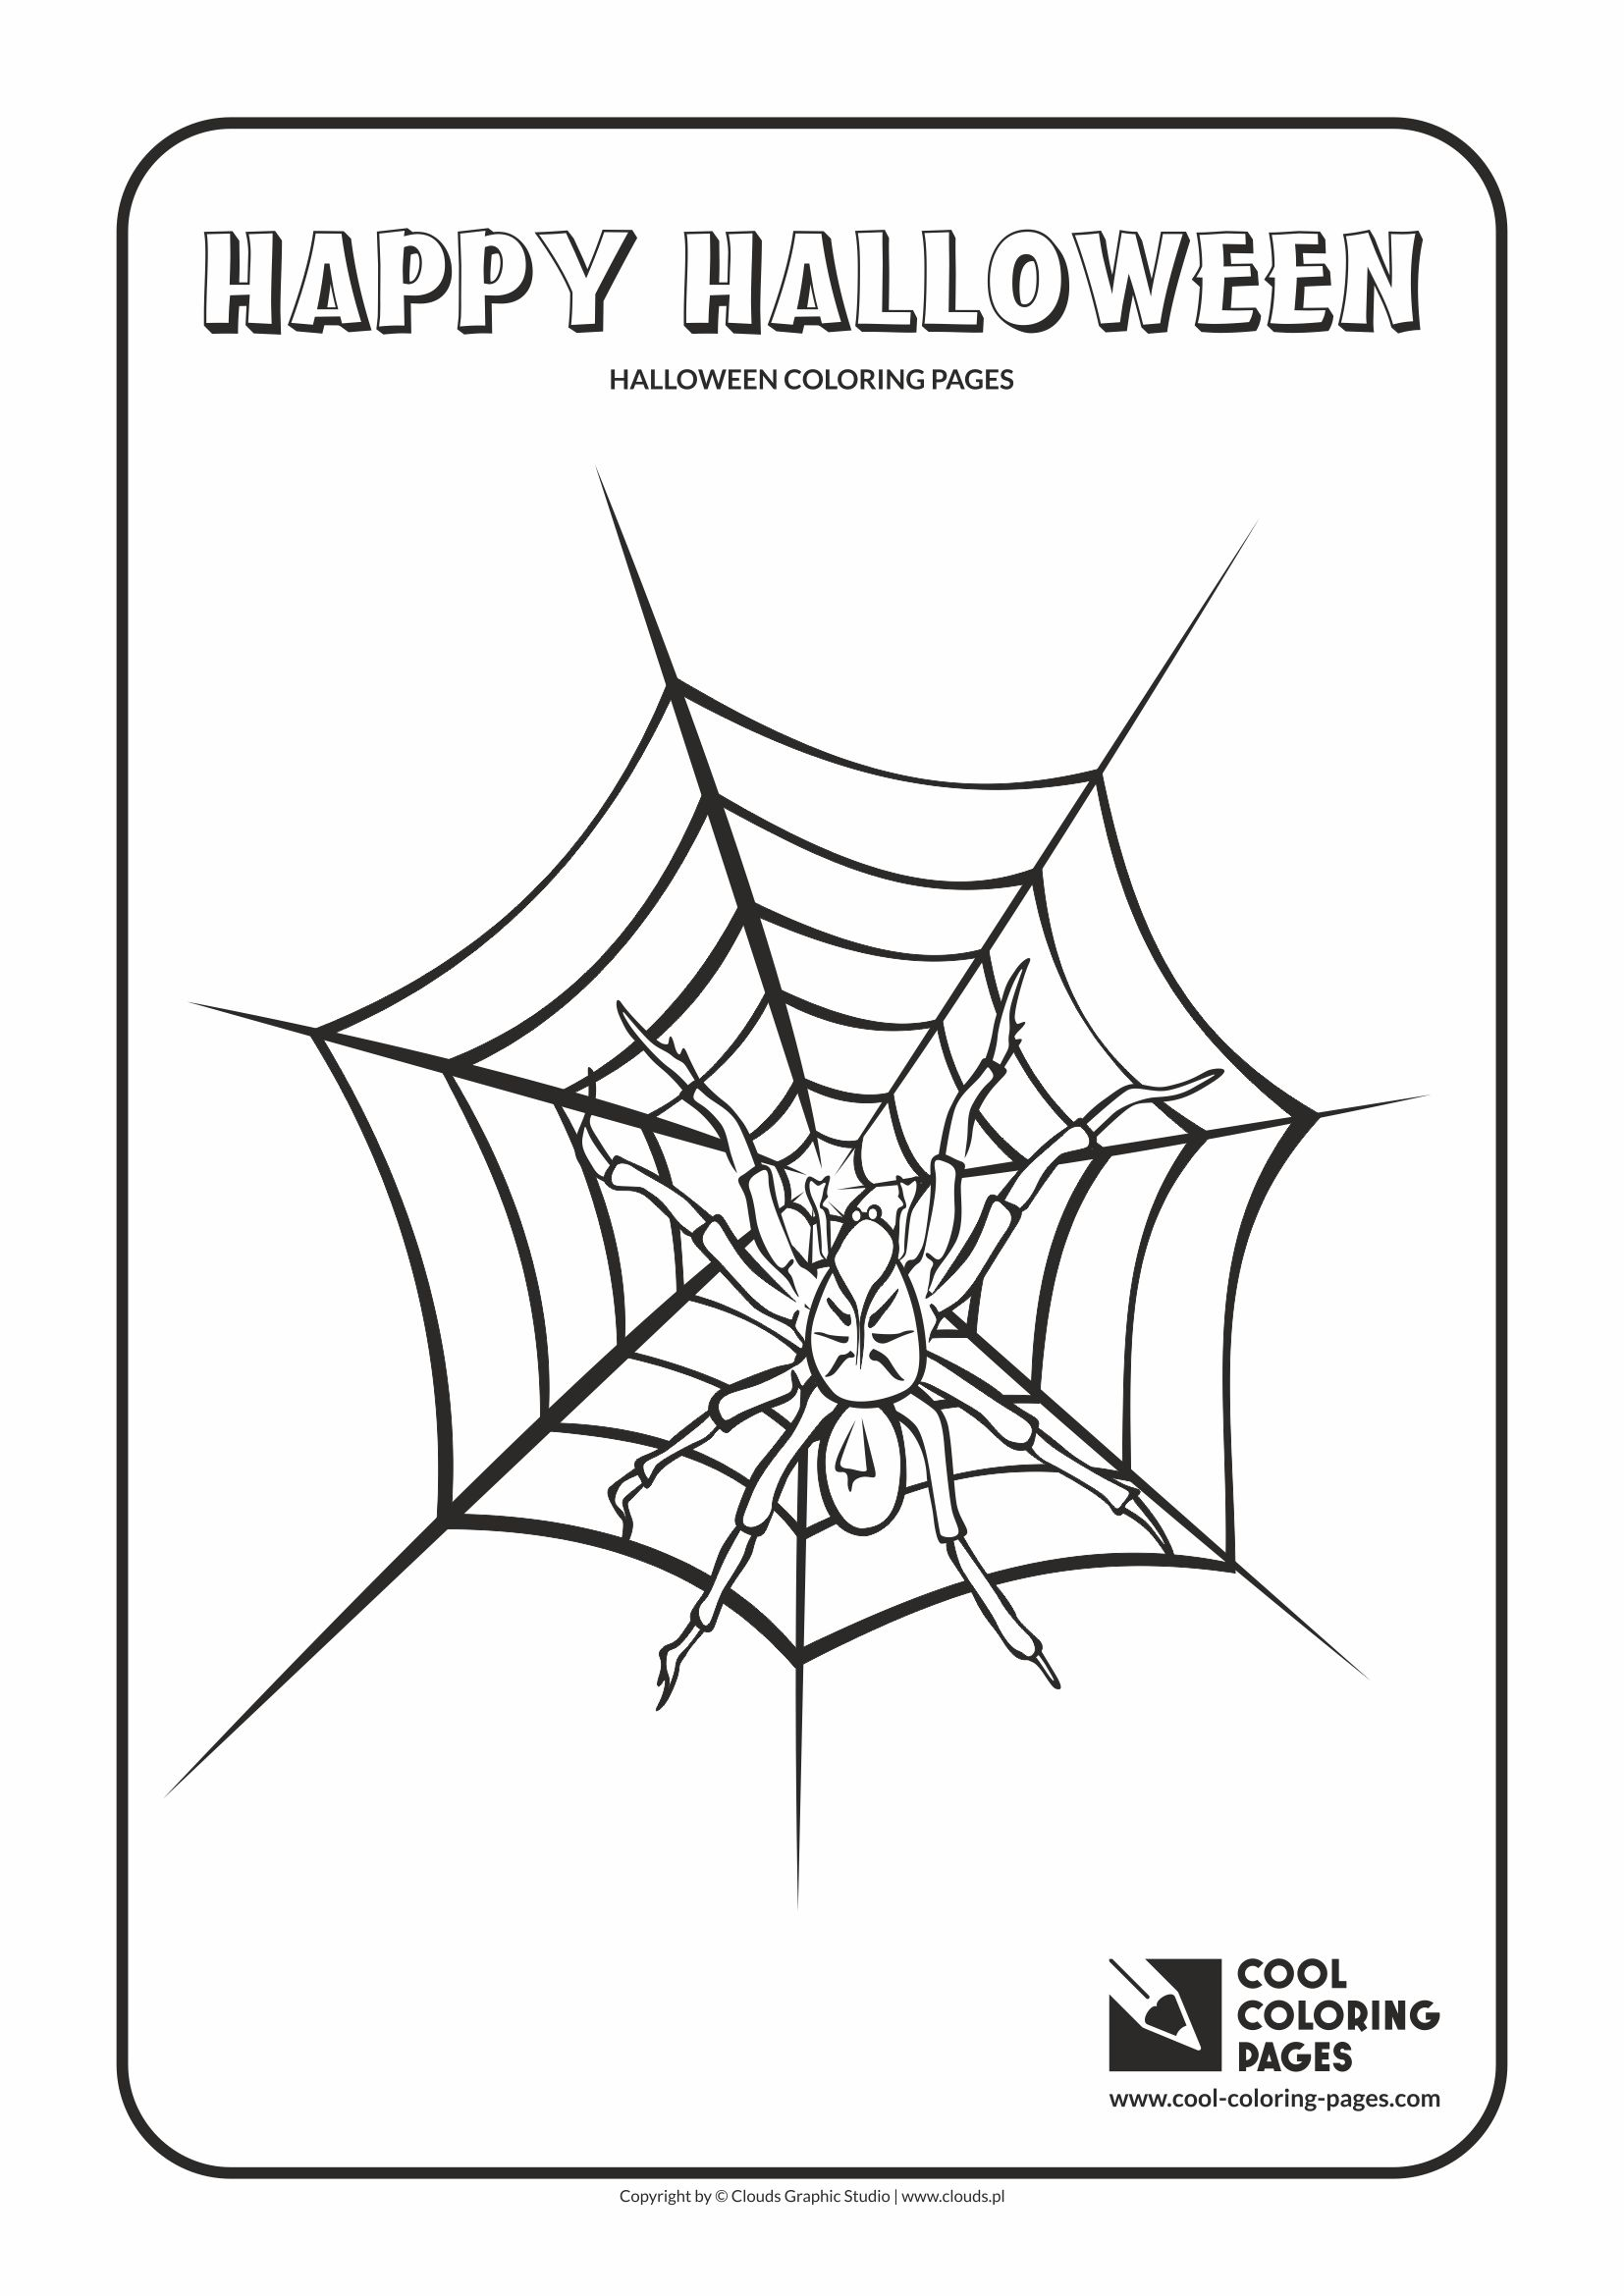 Cool Coloring Pages Home Cool Coloring Pages Free Educational Coloring Pages And Activities For Kids